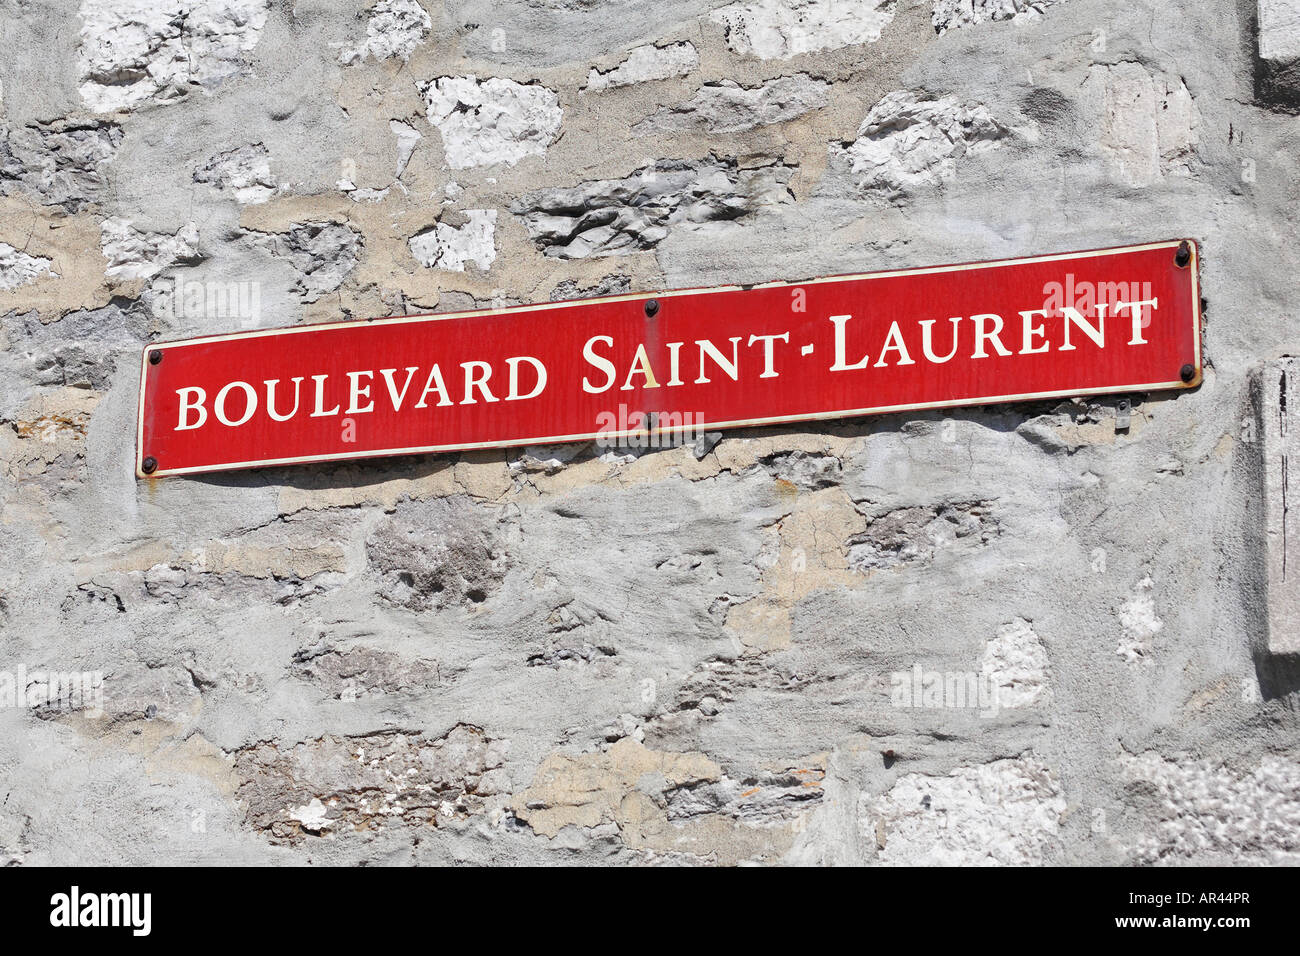 Street sign of Boulevard Saint Laurent on the side of a building in Old Montreal Montreal Quebec Canada - Stock Image